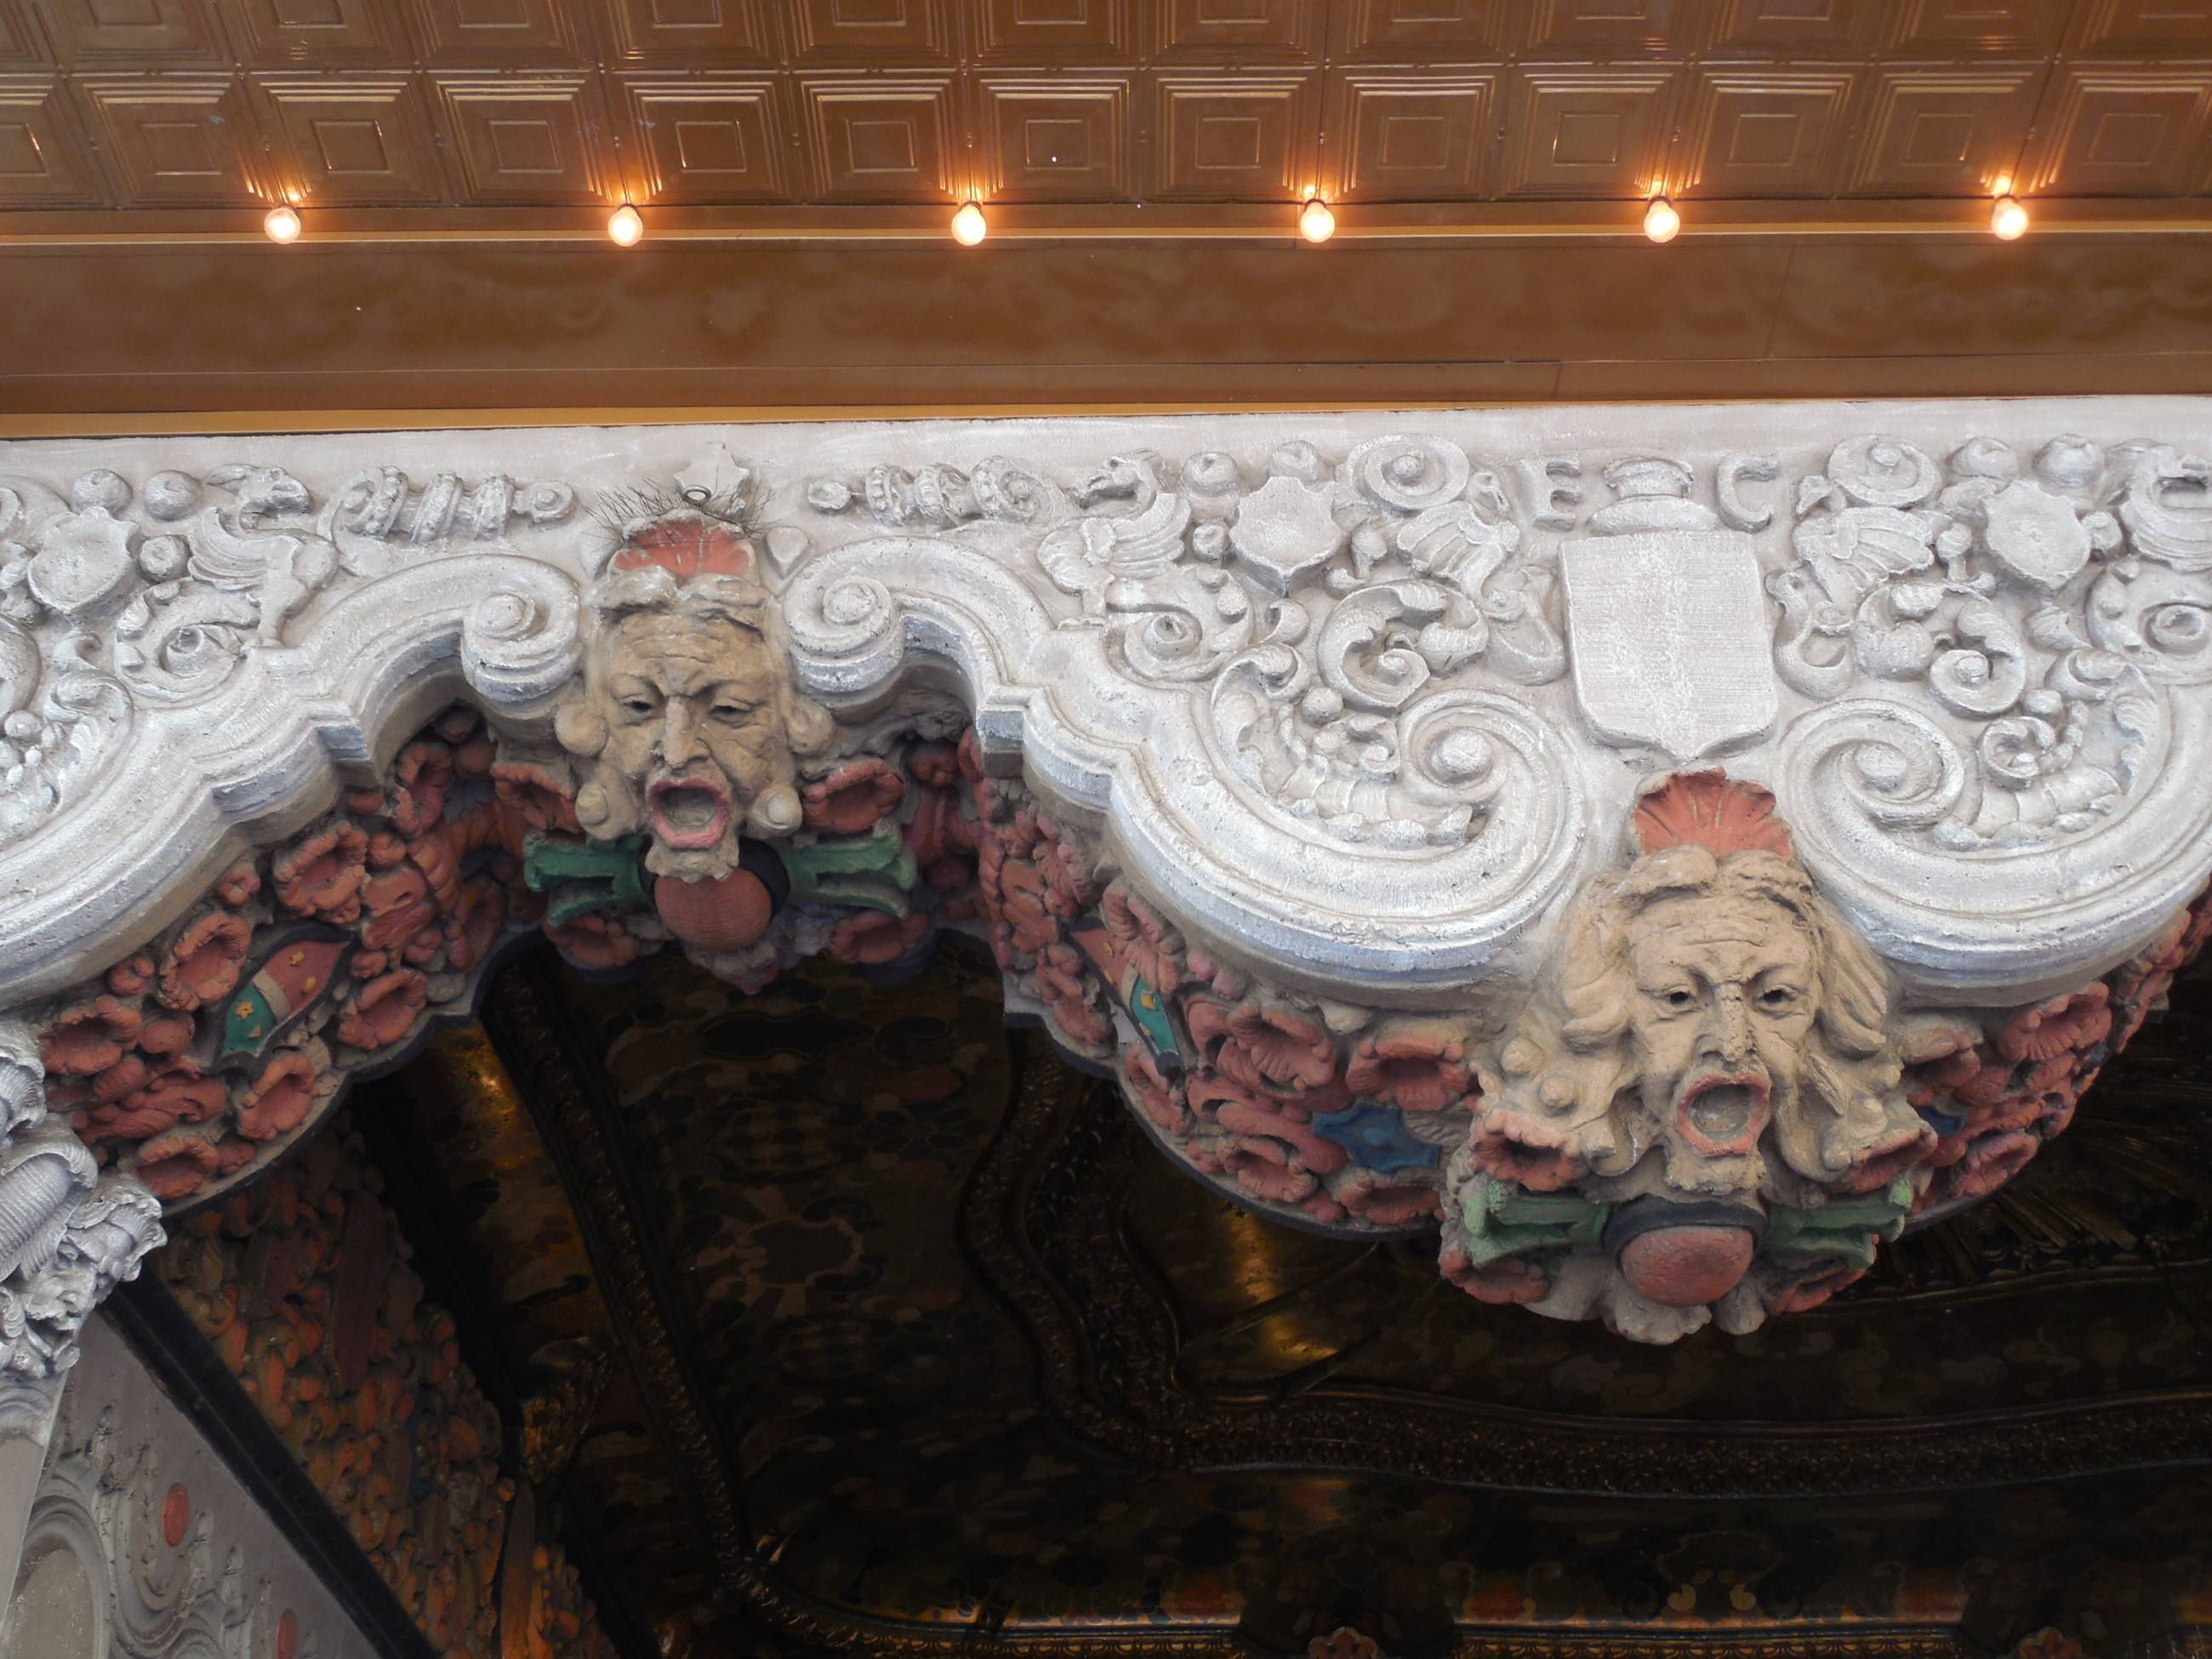 Detail from El Capitan Theatre entrance | Photo courtesy of jimmywayne, Flickr